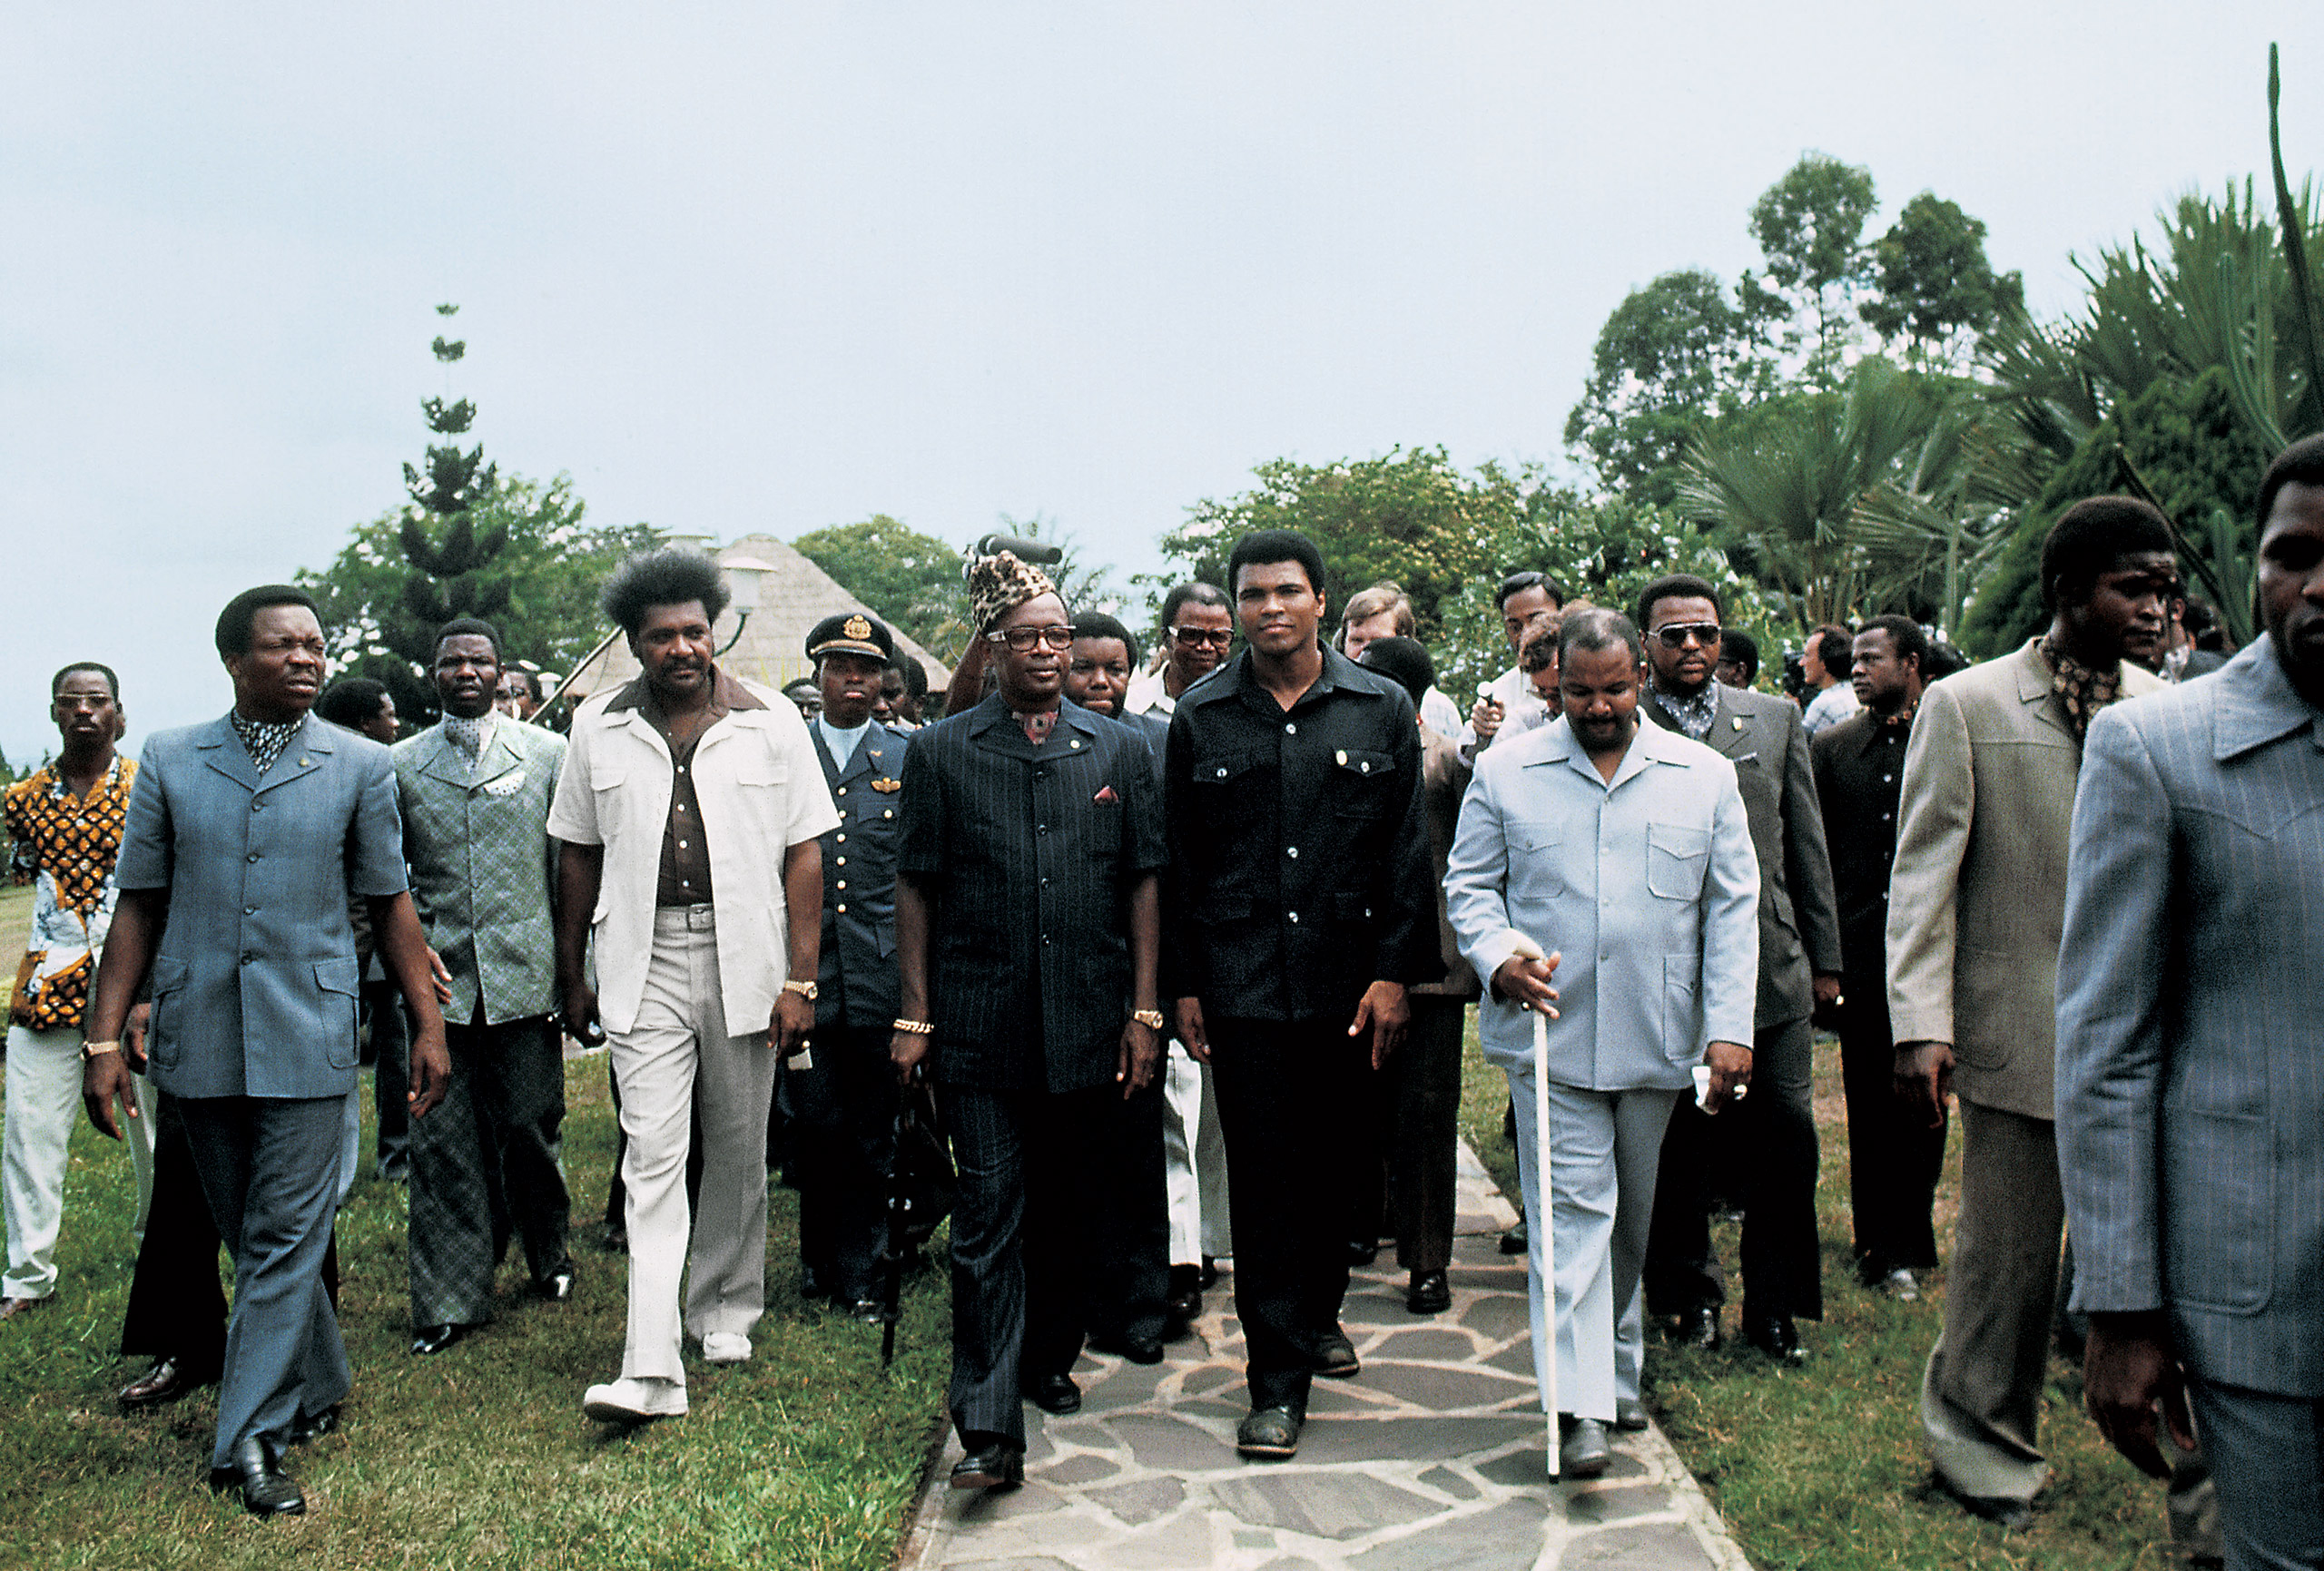 Muhammad Ali, flanked by promoter Don King and his manager Herbert Muhammad, is received by Mobutu Sese Seko,                     president of Zaire, wearing his characteristic leopard-skin hat. The despotic Mobutu readily put up the $10 million combined purse, knowing that the fight would bring Zaire to the international sporting stage.